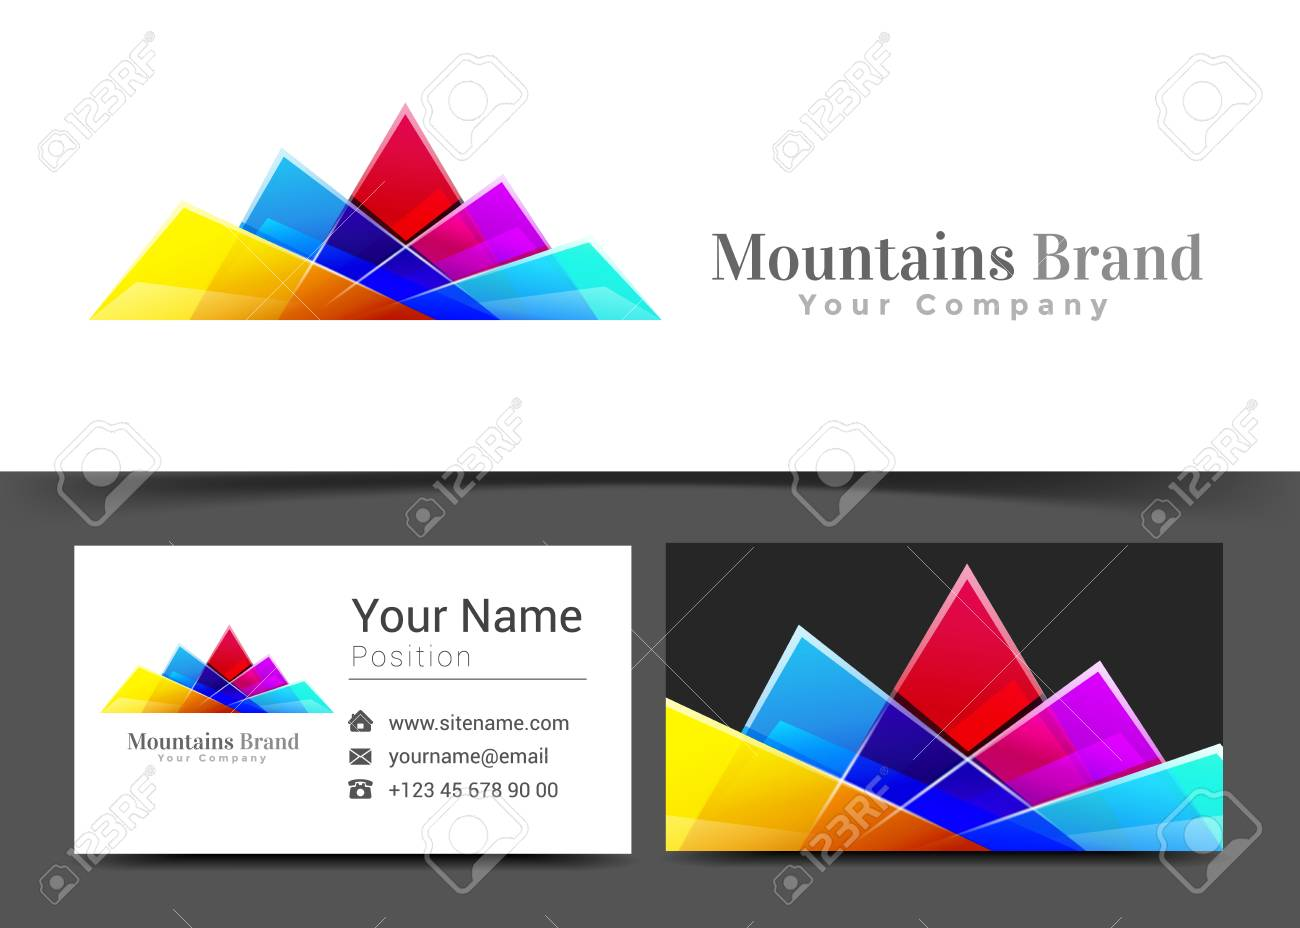 Business card sign choice image free business cards mountains corporate logo and business card sign template creative mountains corporate logo and business card sign magicingreecefo Images